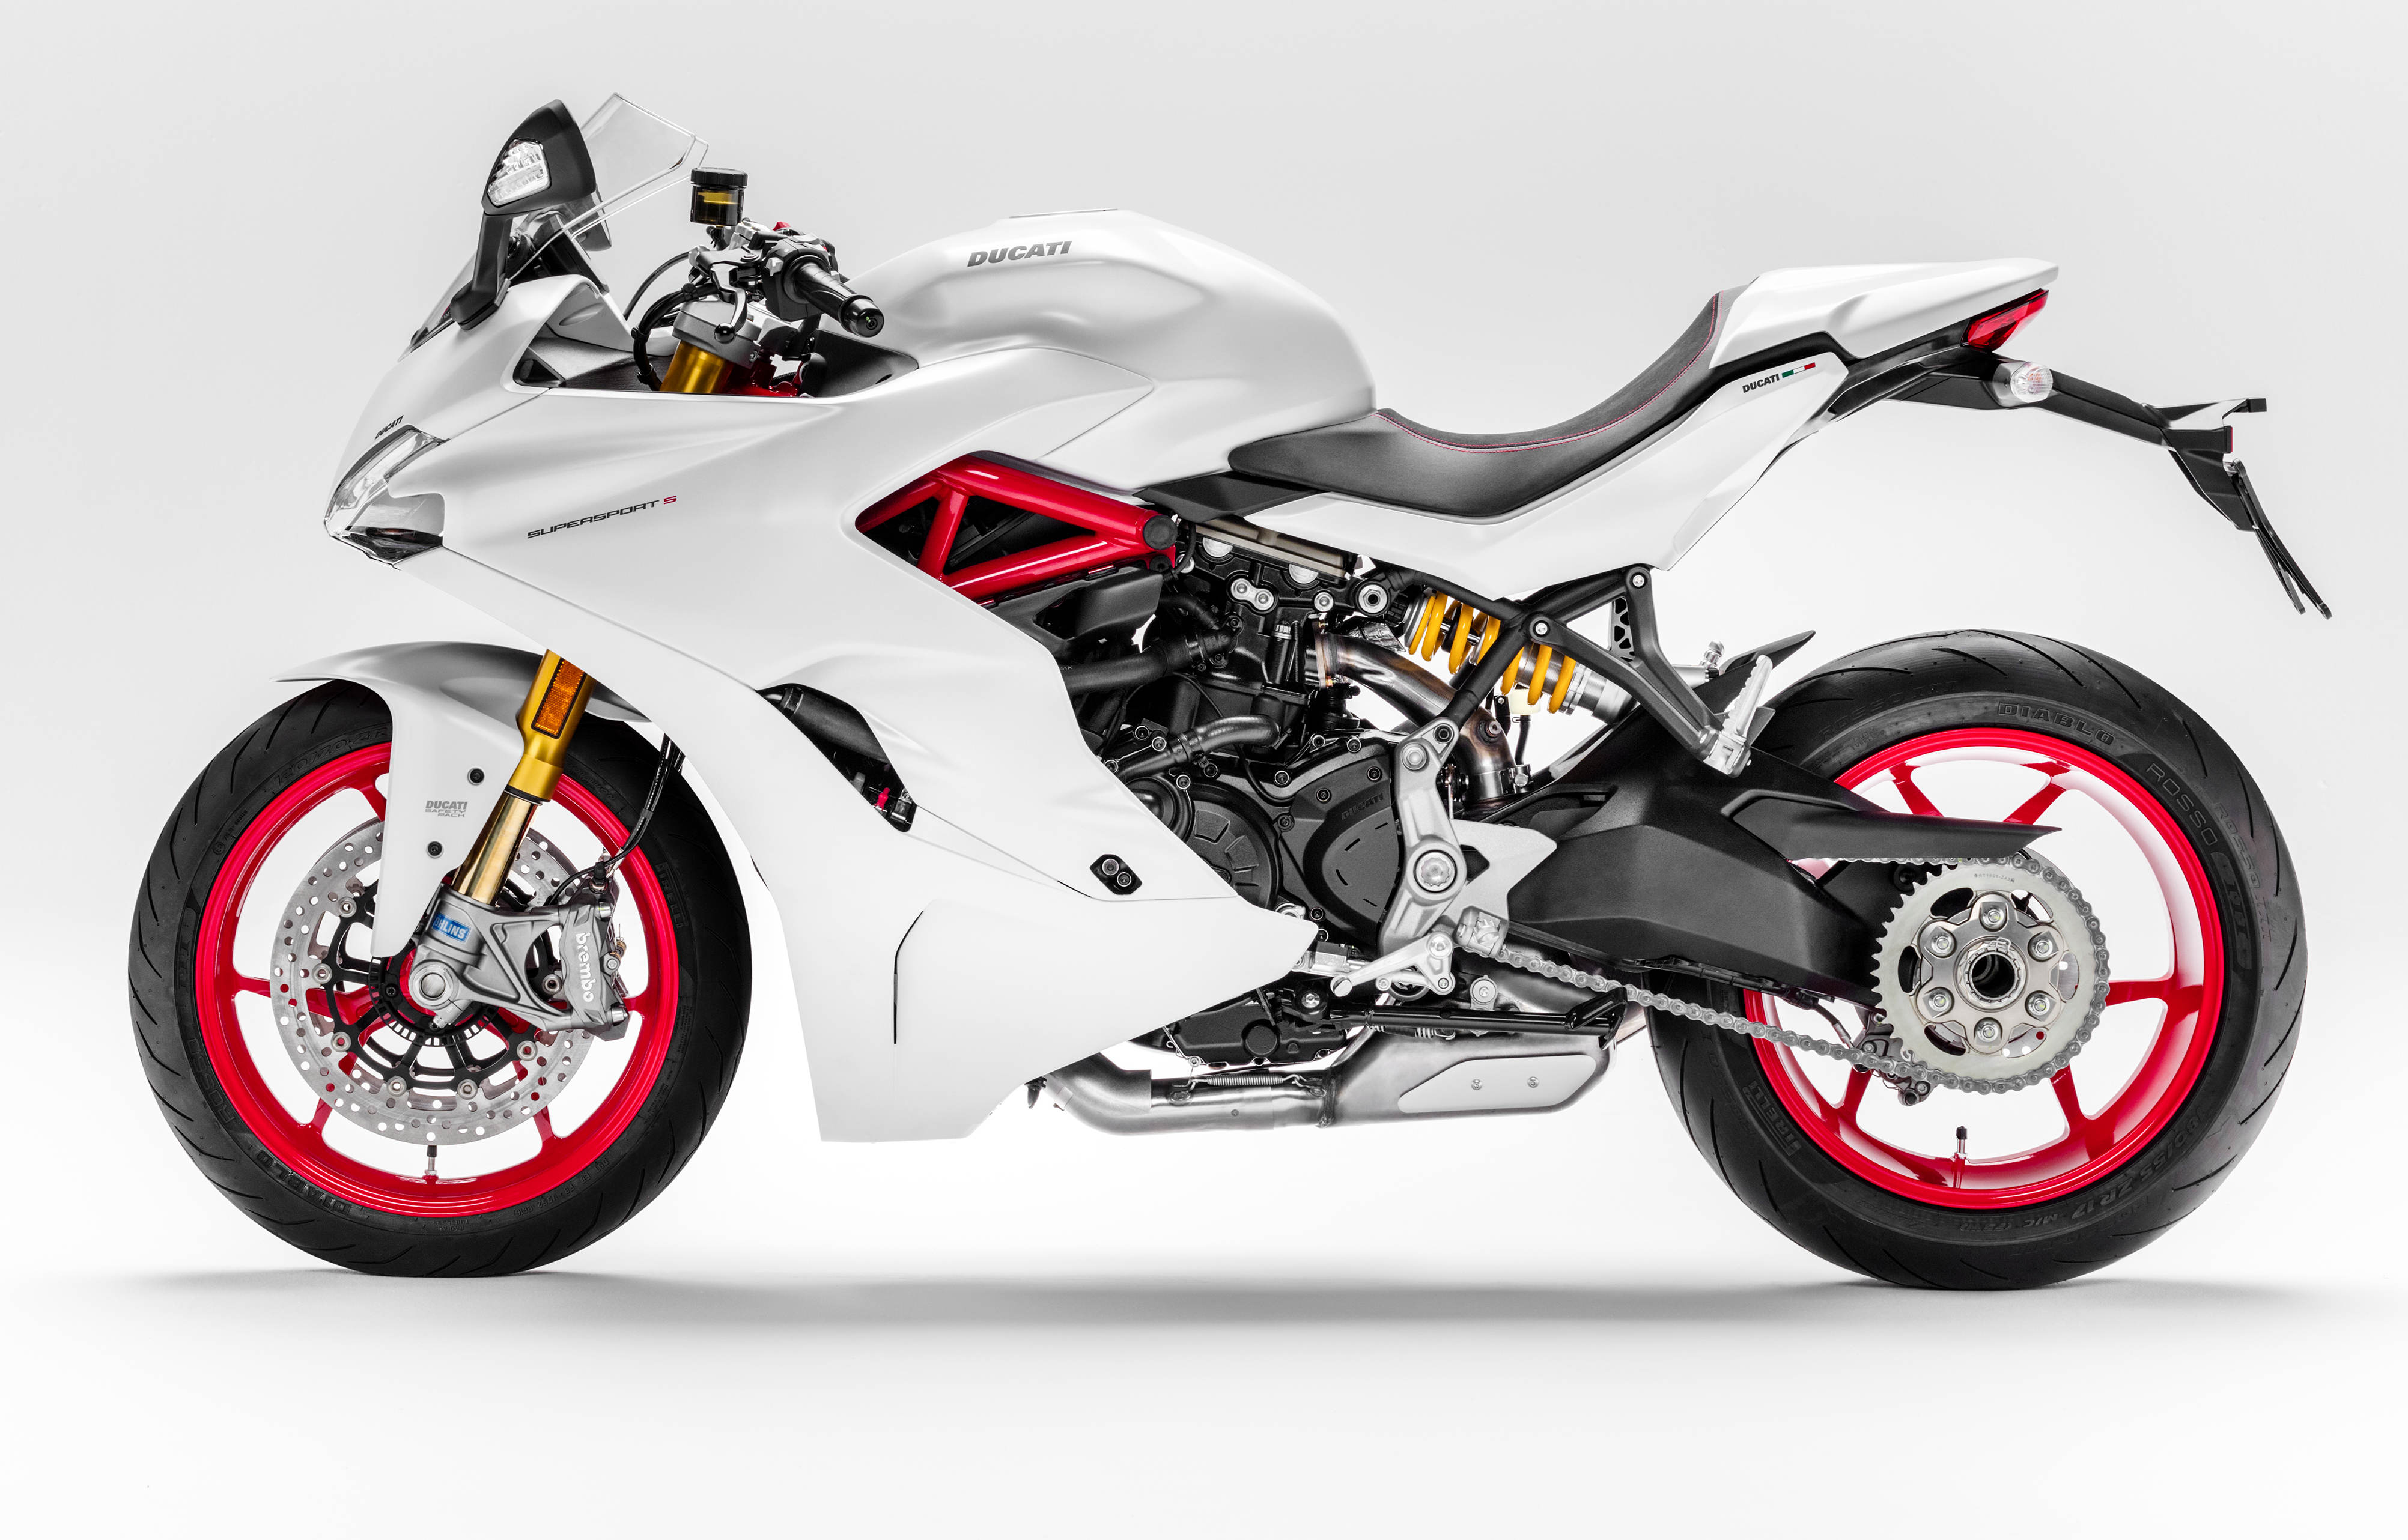 ducati introduces new supersport in cologne « motorcycledaily